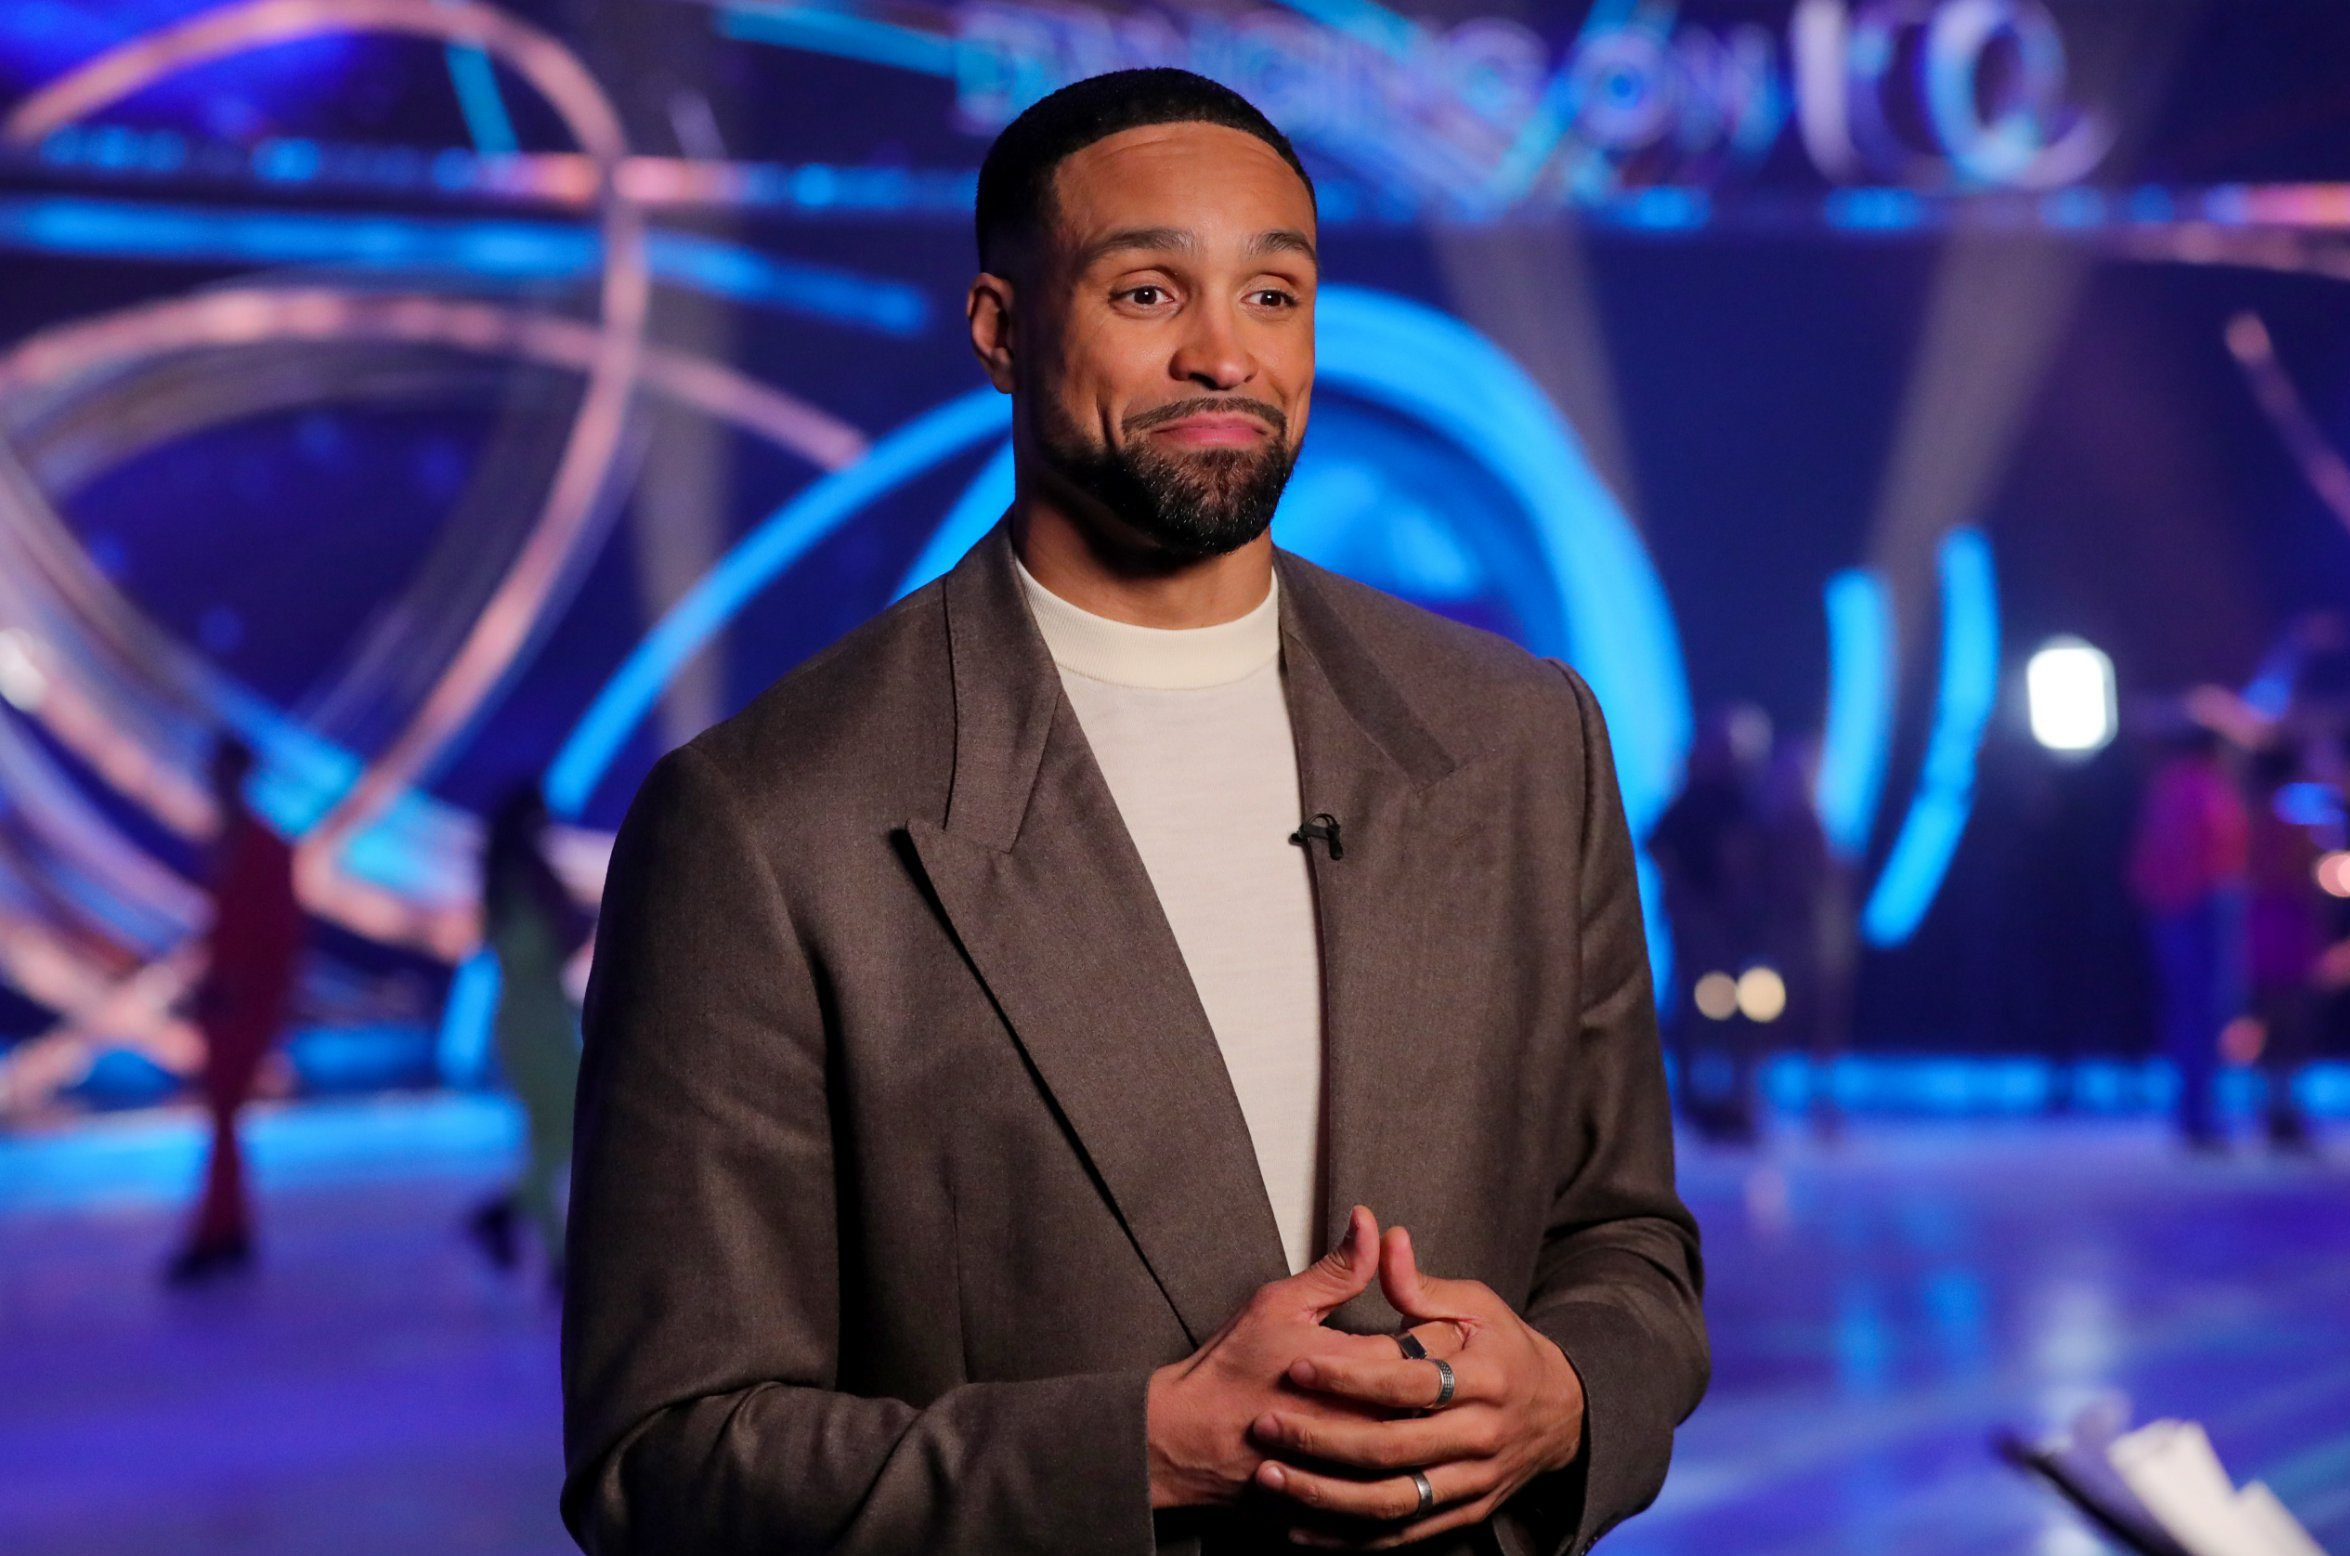 Ashley Banjo's brother Jordan hits back at online troll accusing Dancing On Ice star of 'racist' scoring